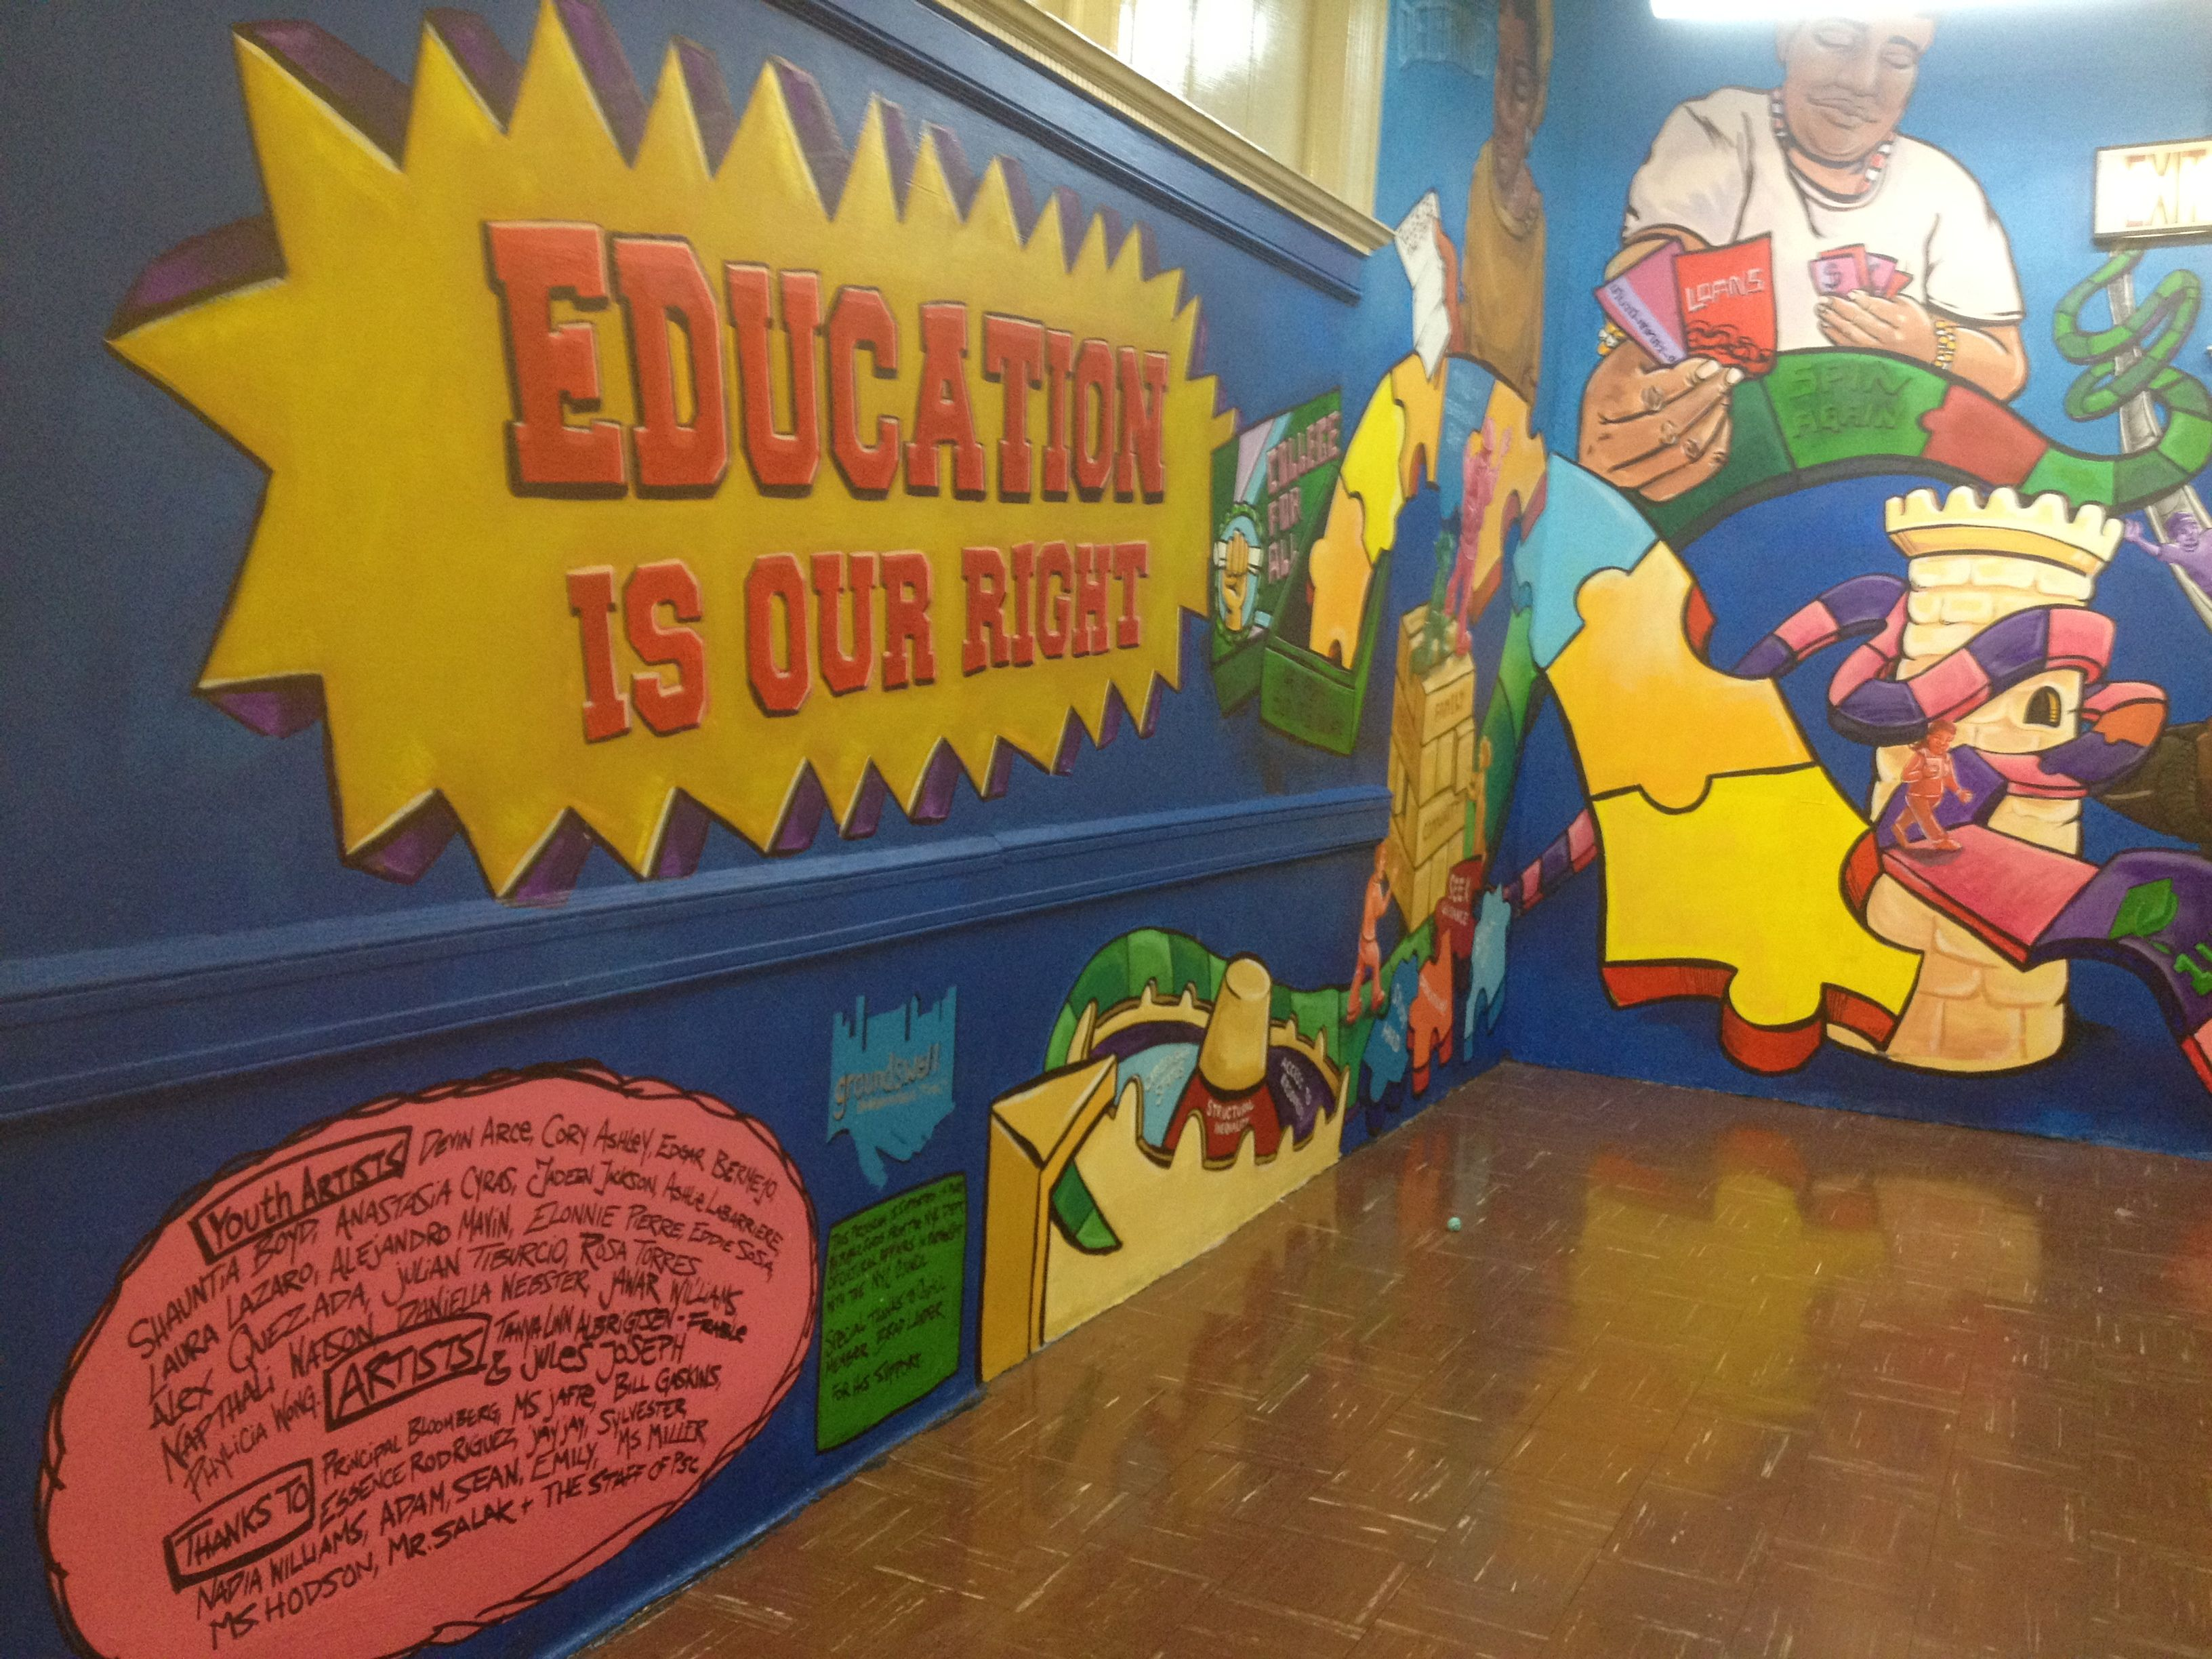 Students from Park Slope Collegiate and the Secondary School for Law, which are both housed at John Jay, teamed up to paint this mural at Park Slope Collegiate.